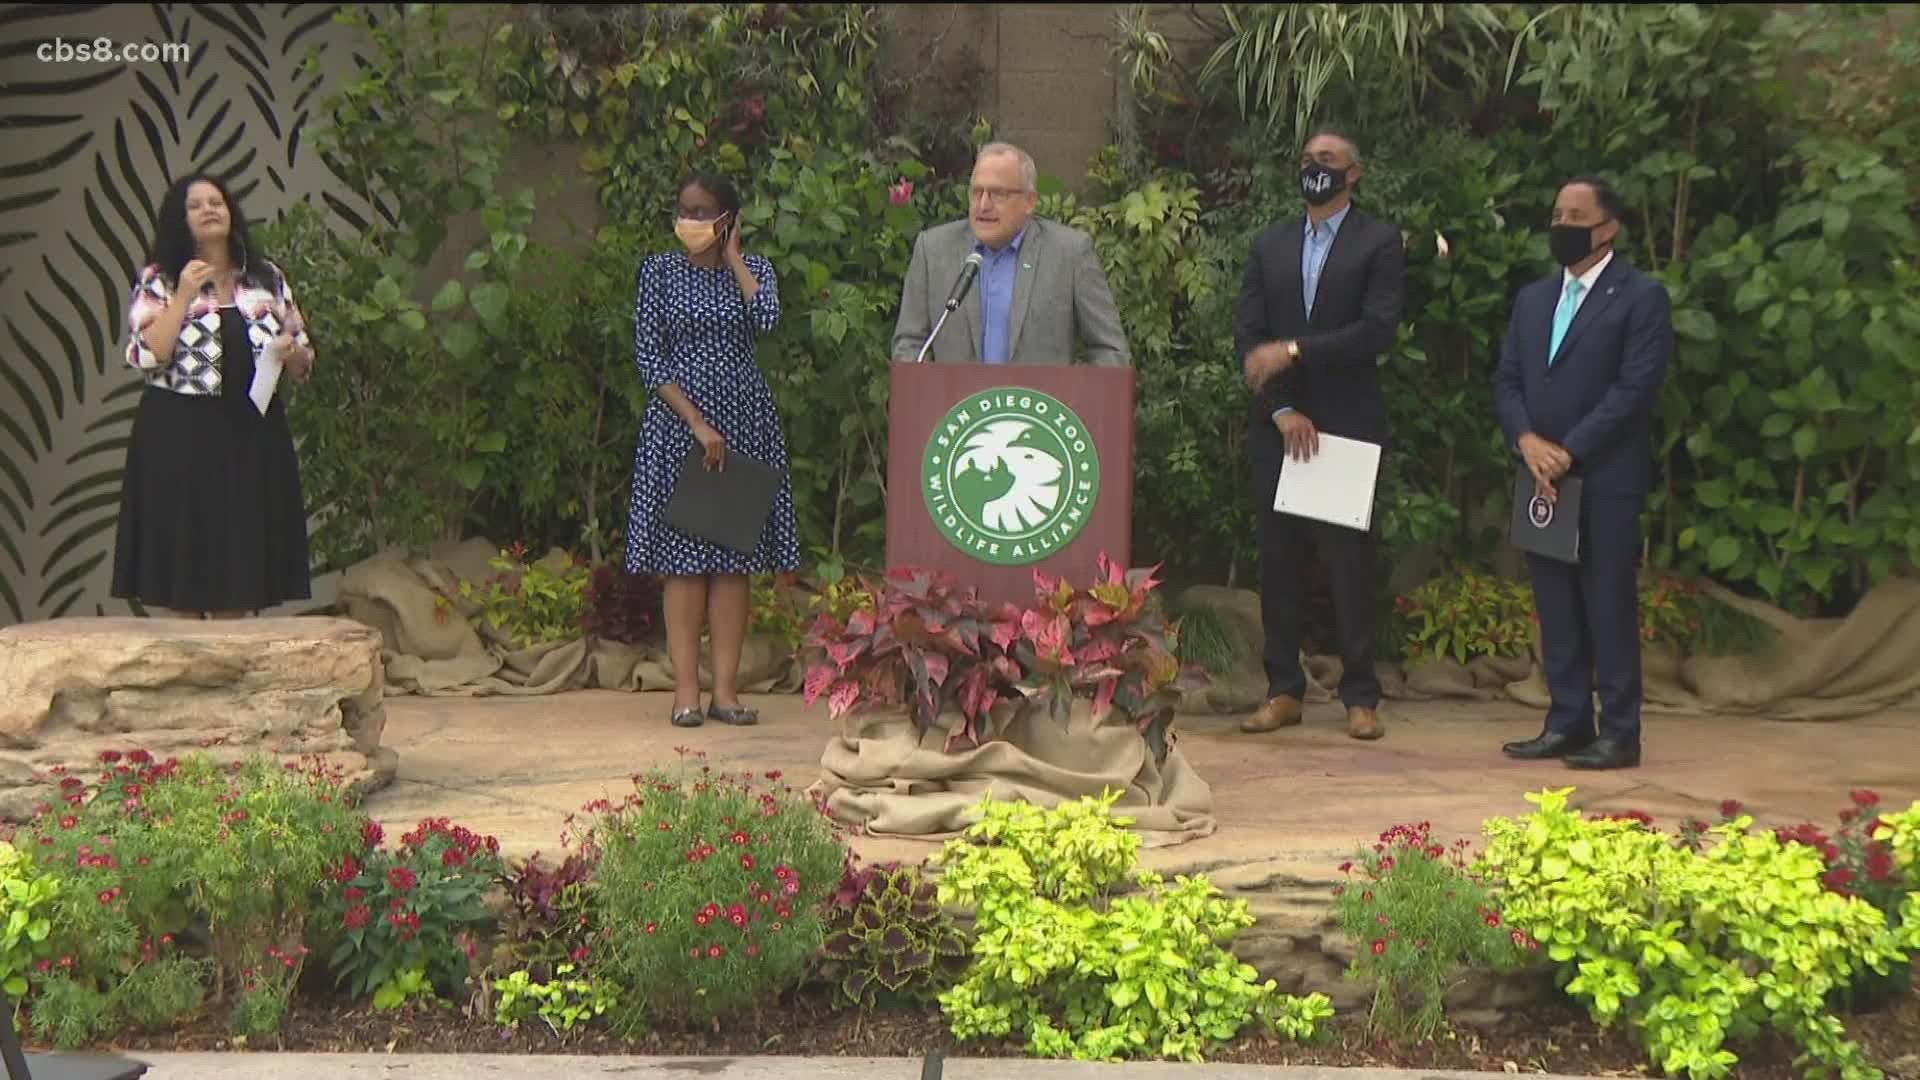 San Diego invests $1 million in program to help young